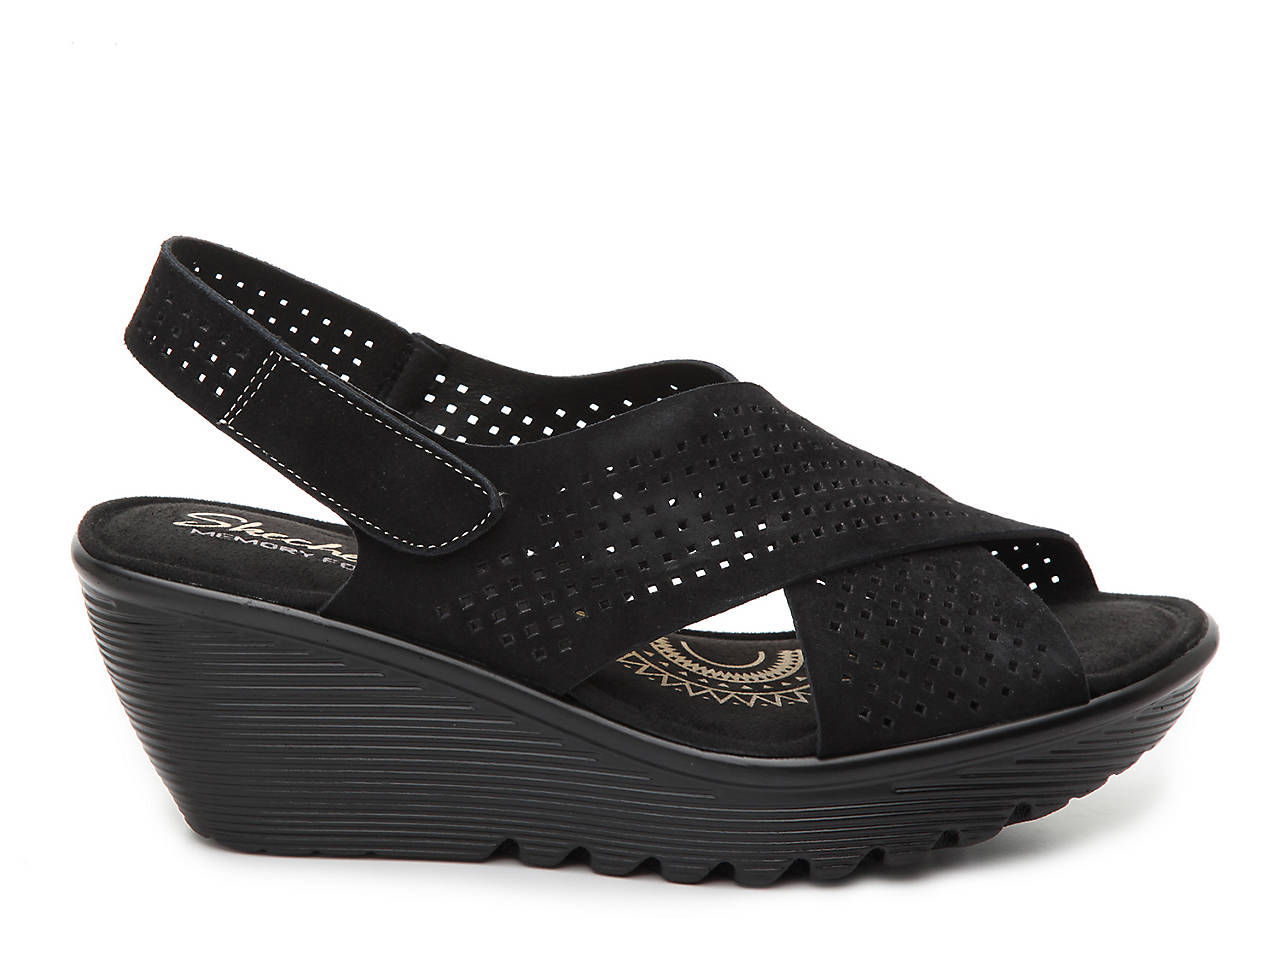 2d9760fa17 Skechers Parallel Infrastructure Wedge Sandal Women's Shoes | DSW